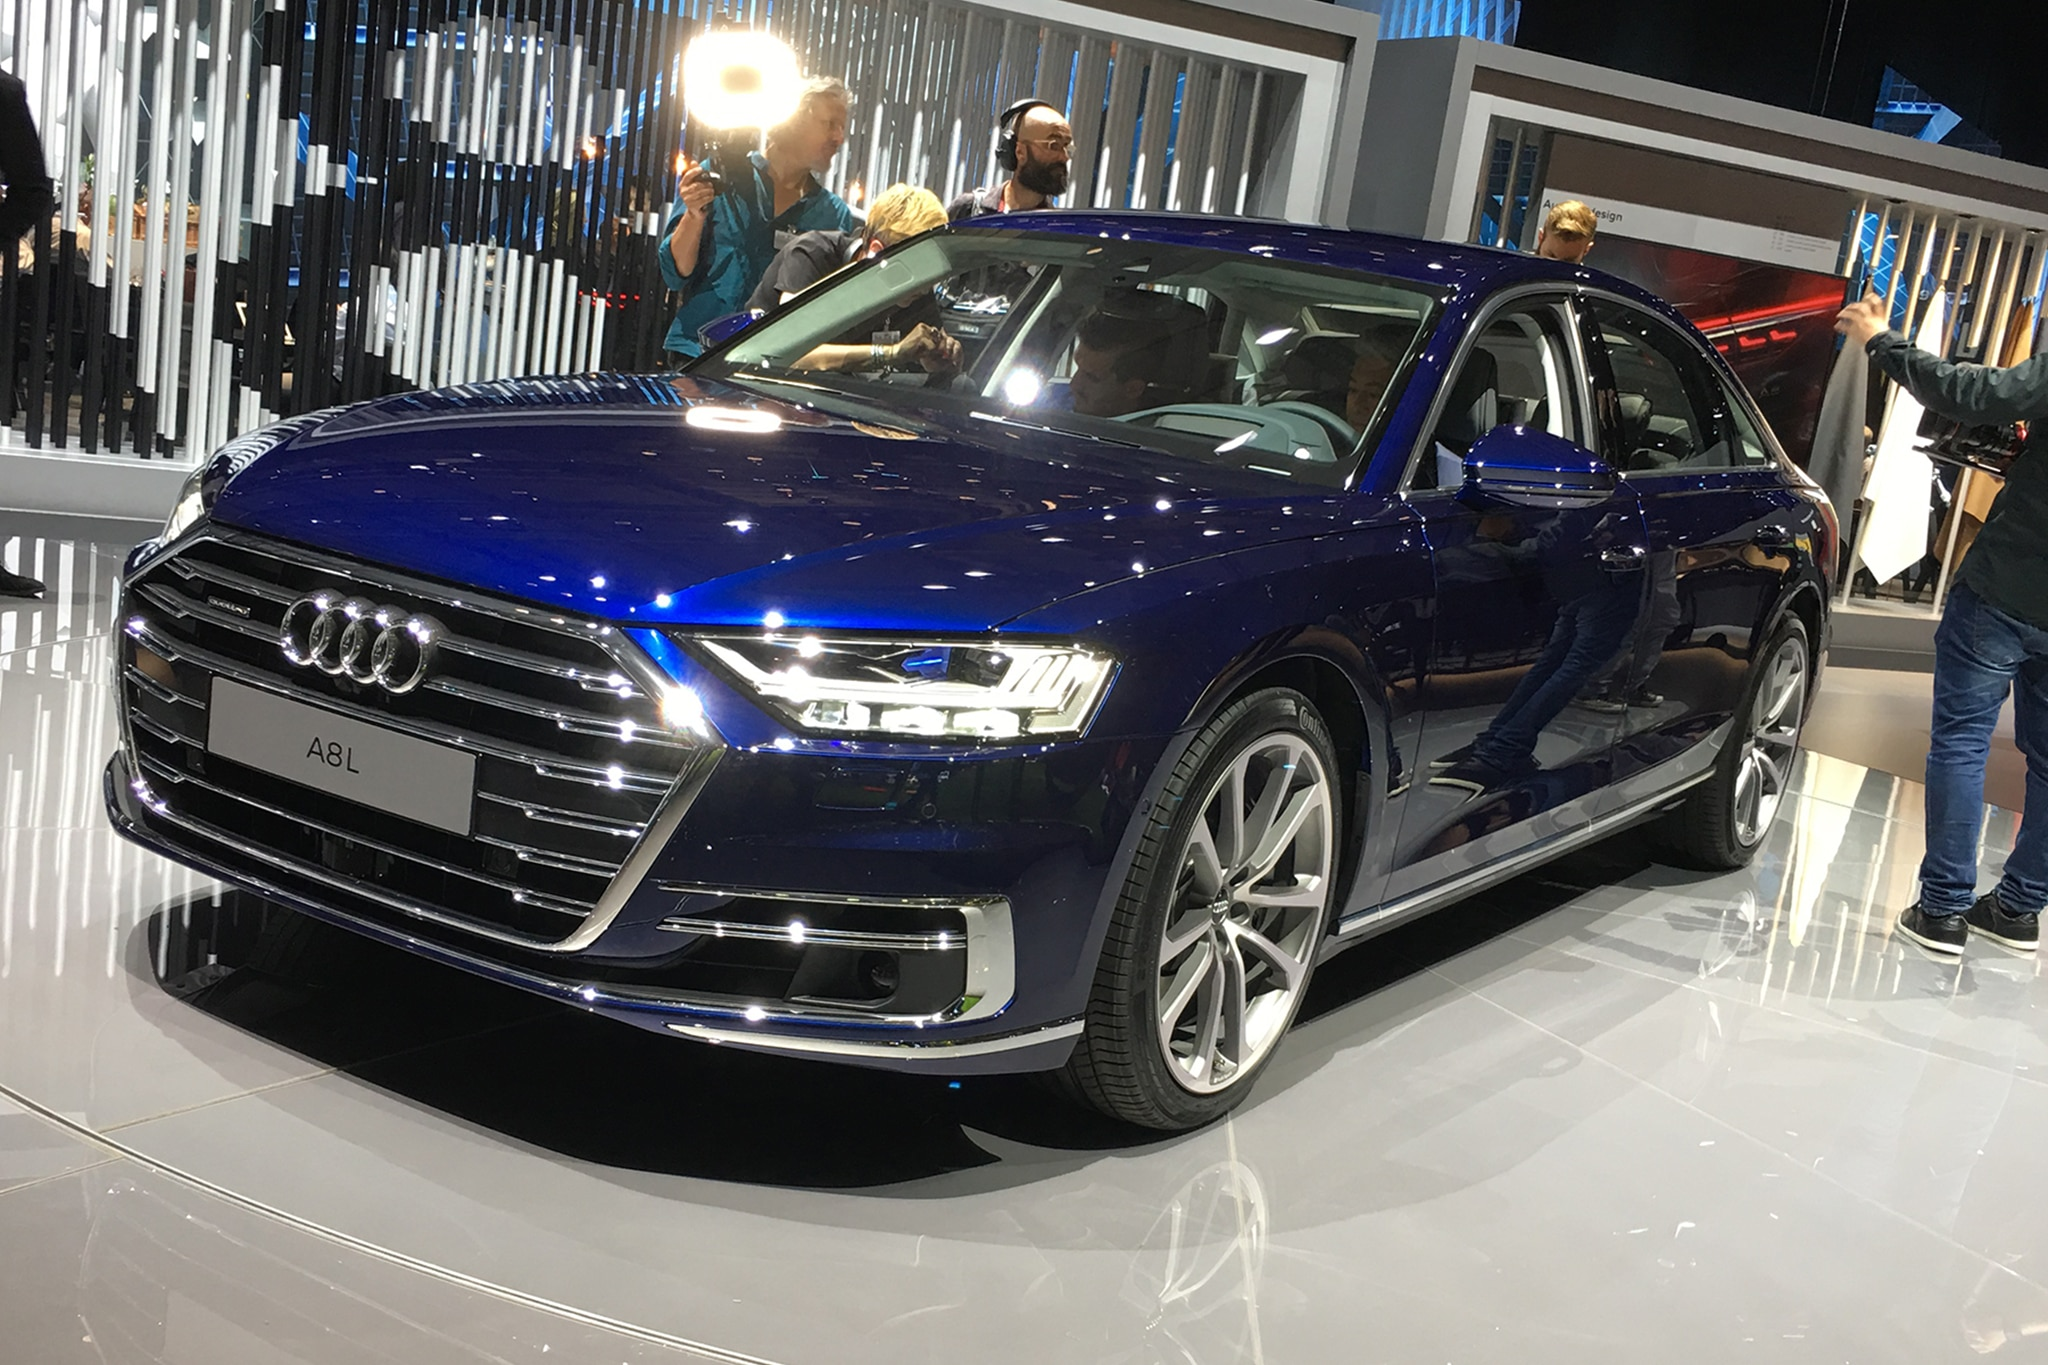 2019 audi a8 rolls in ready to drive itself automobile magazine